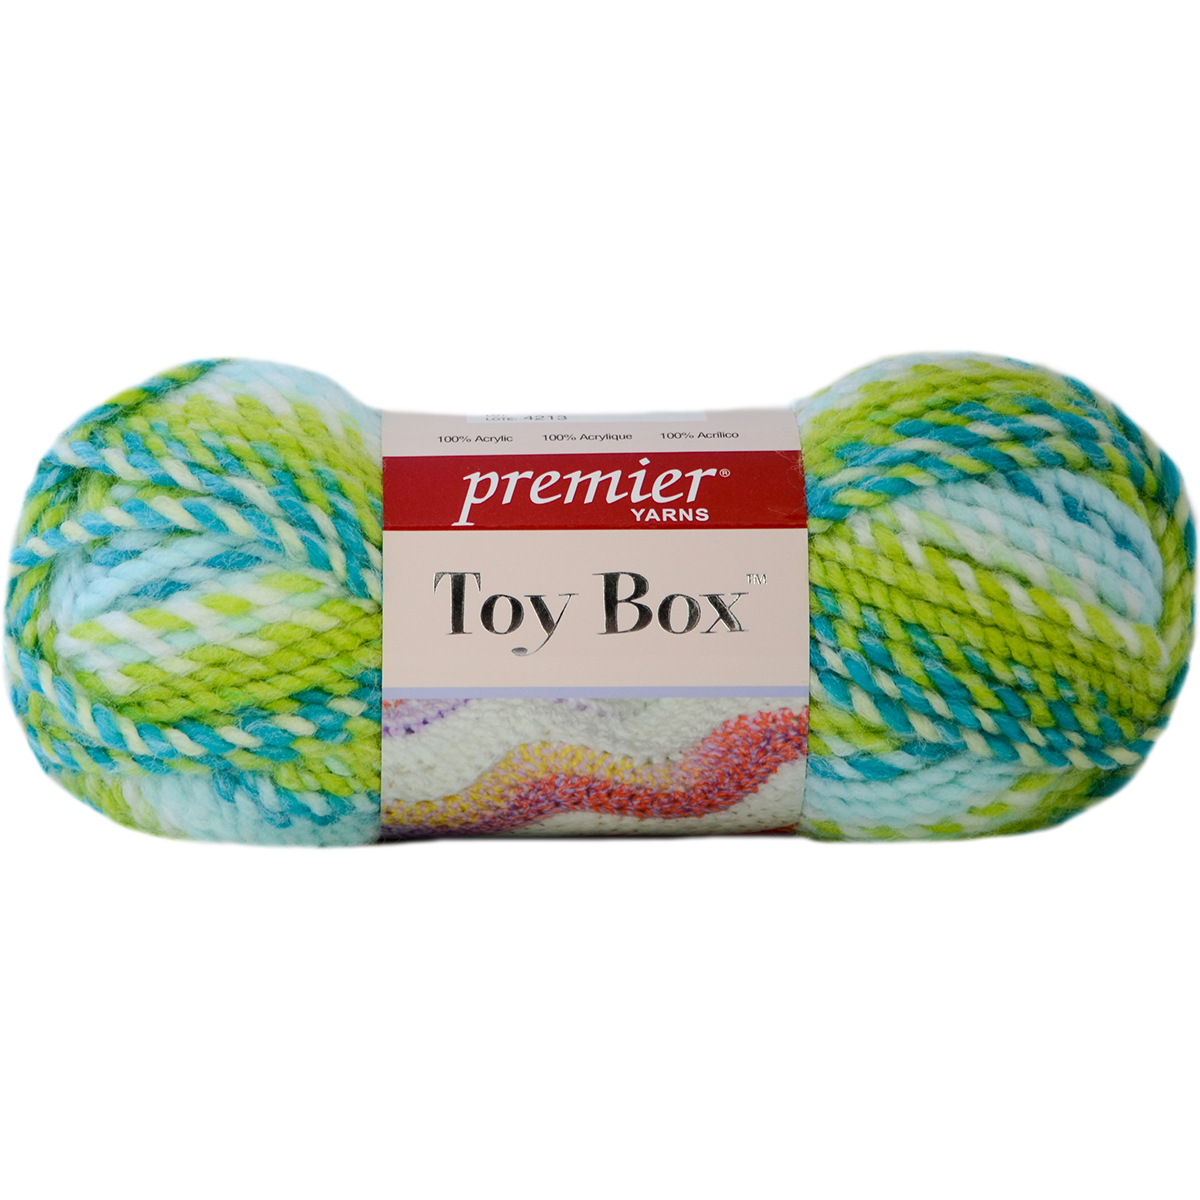 Toy Box Yarn-Hula Hoop